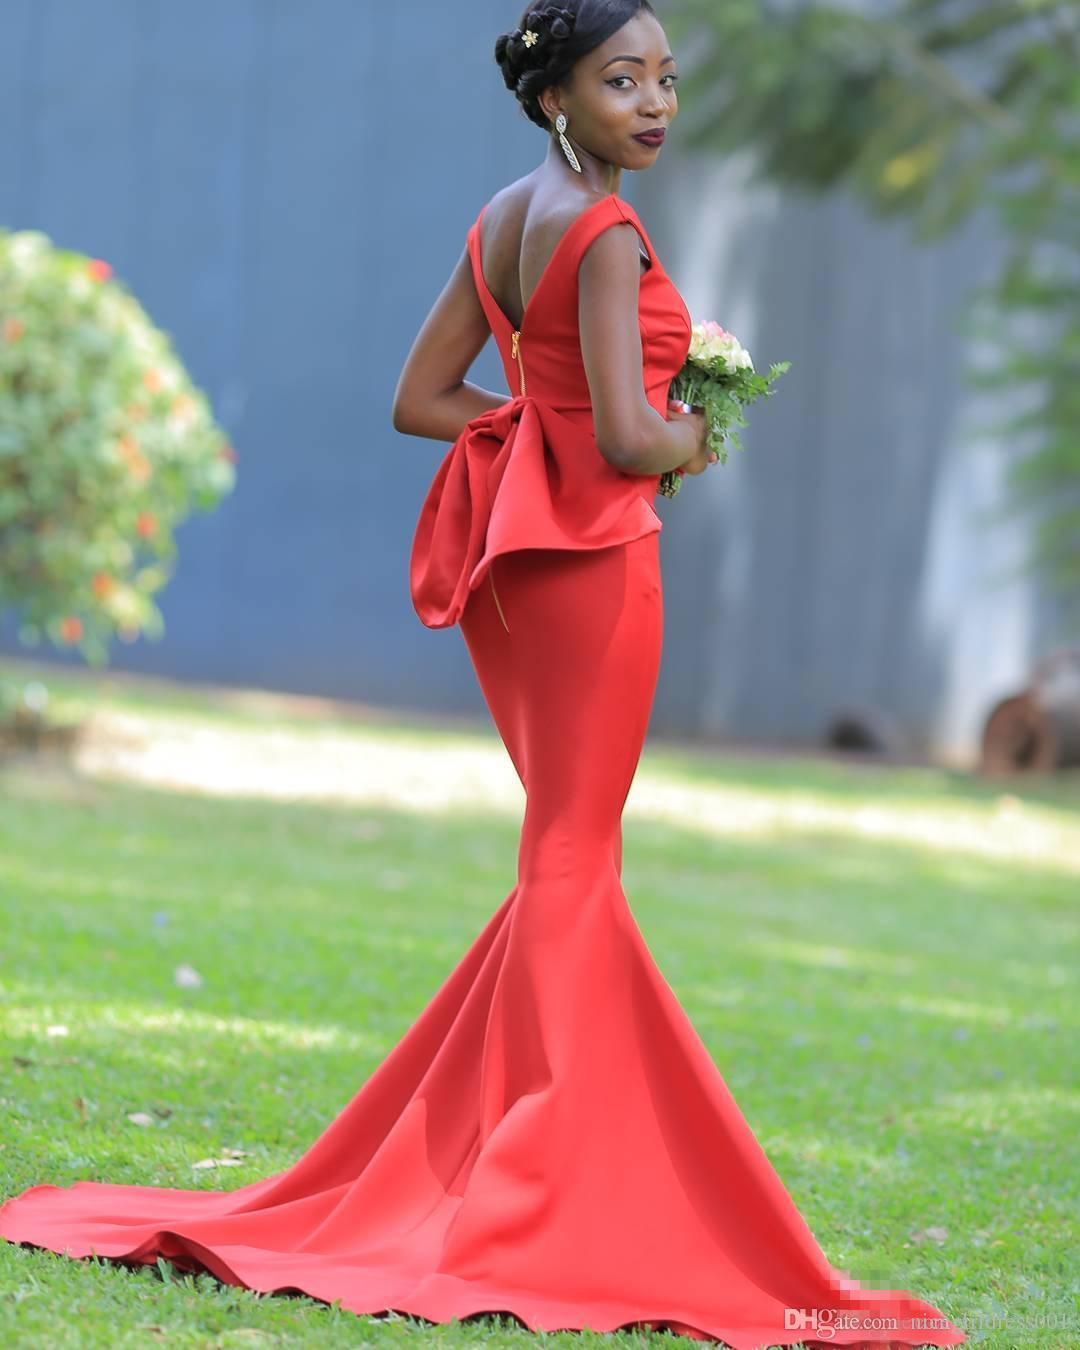 South African Nigeria Girls Backless Bridesmaids Dresses 2018 Mermaid Off Shoulder With Removable Big Bow Tie Plus Size Maid of Honor Gowns